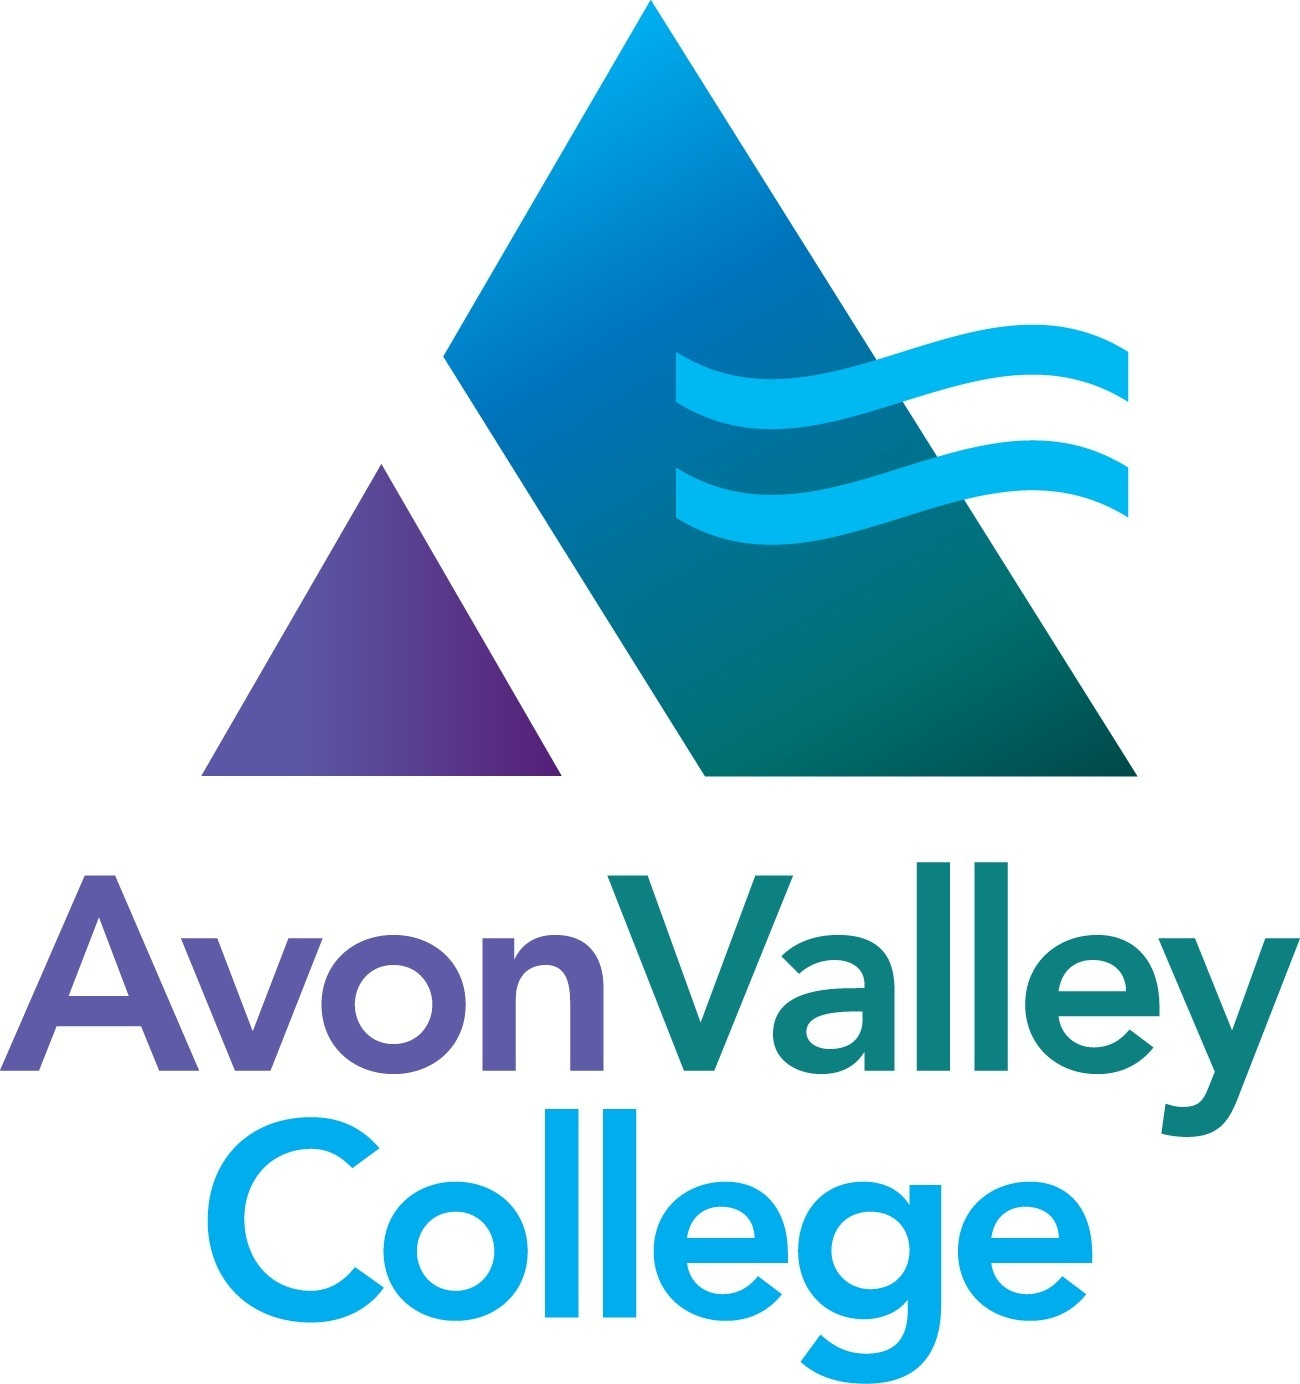 Avon Valley College - An 11-18 Secondary School with 6th Form